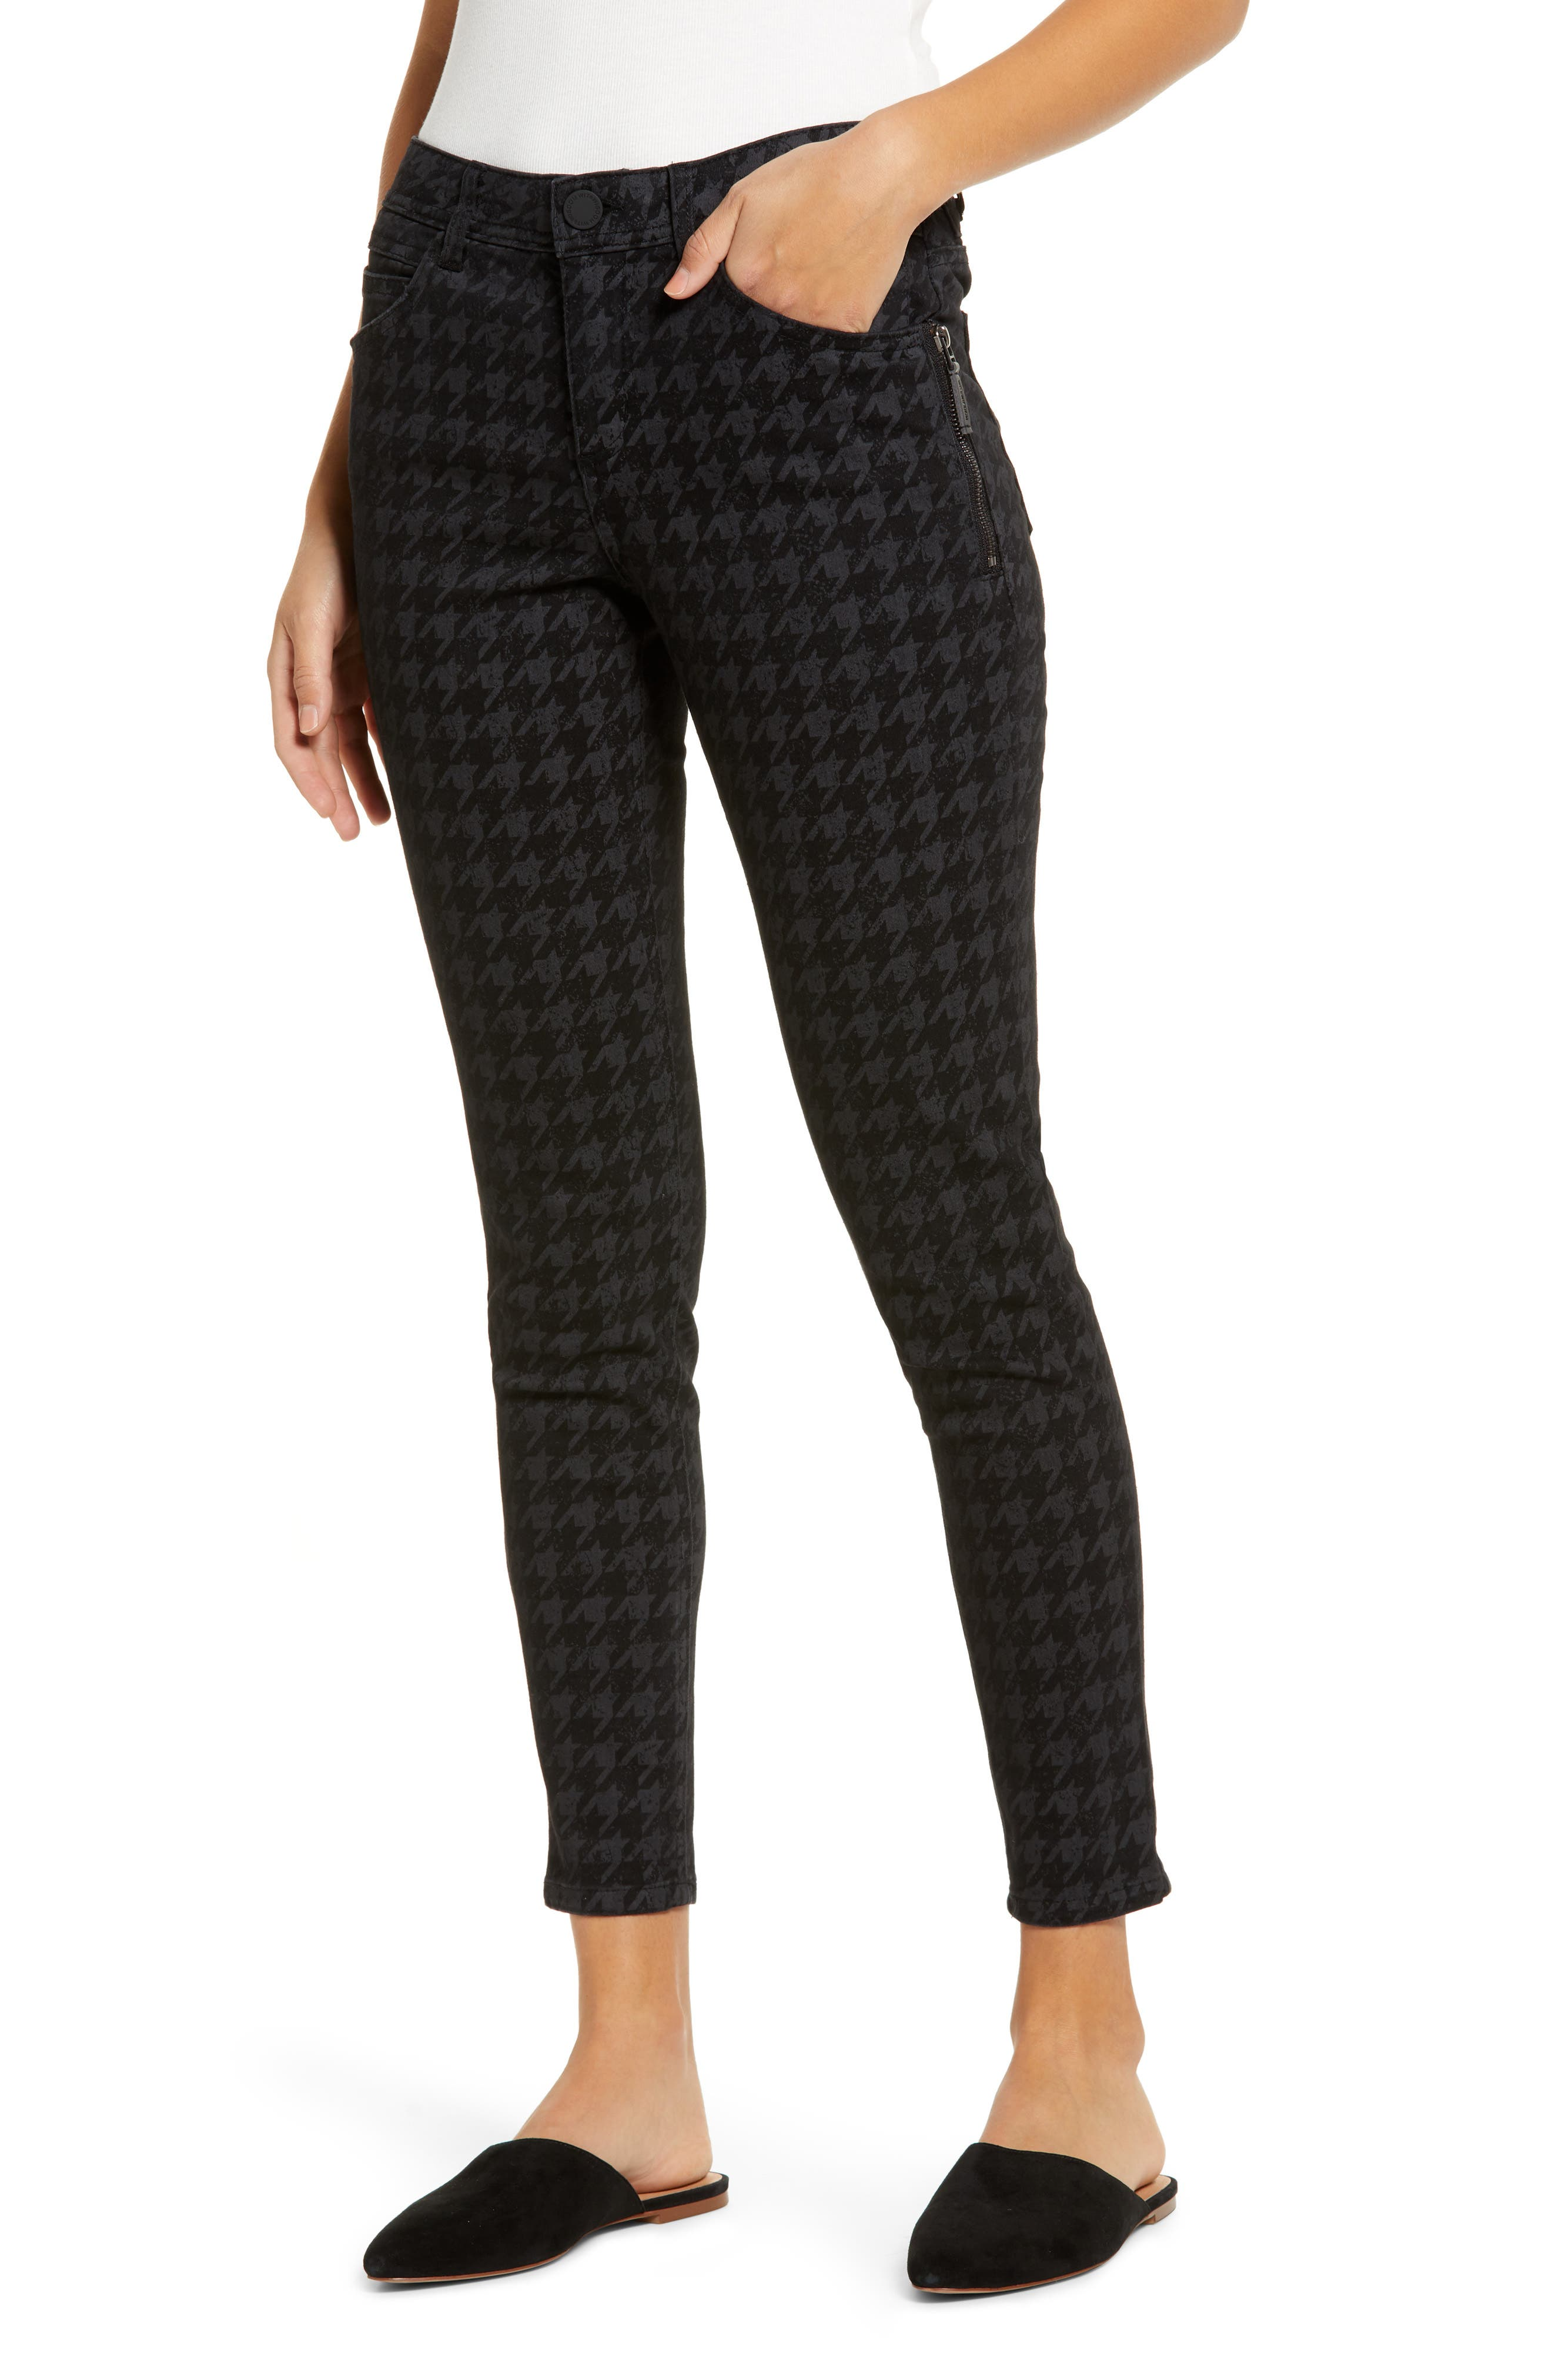 Ultra-comfy skinny jeans with a houndstooth pattern and zipper accents feature Ab-solution power-mesh panels and a waistband with booty-lift construction. Style Name: Wit & Wisdom Ab-Solution Side Zip Crop Skinny Jeans (Regular & Petite) (Nordstrom Exclusive). Style Number: 6053267. Available in stores.